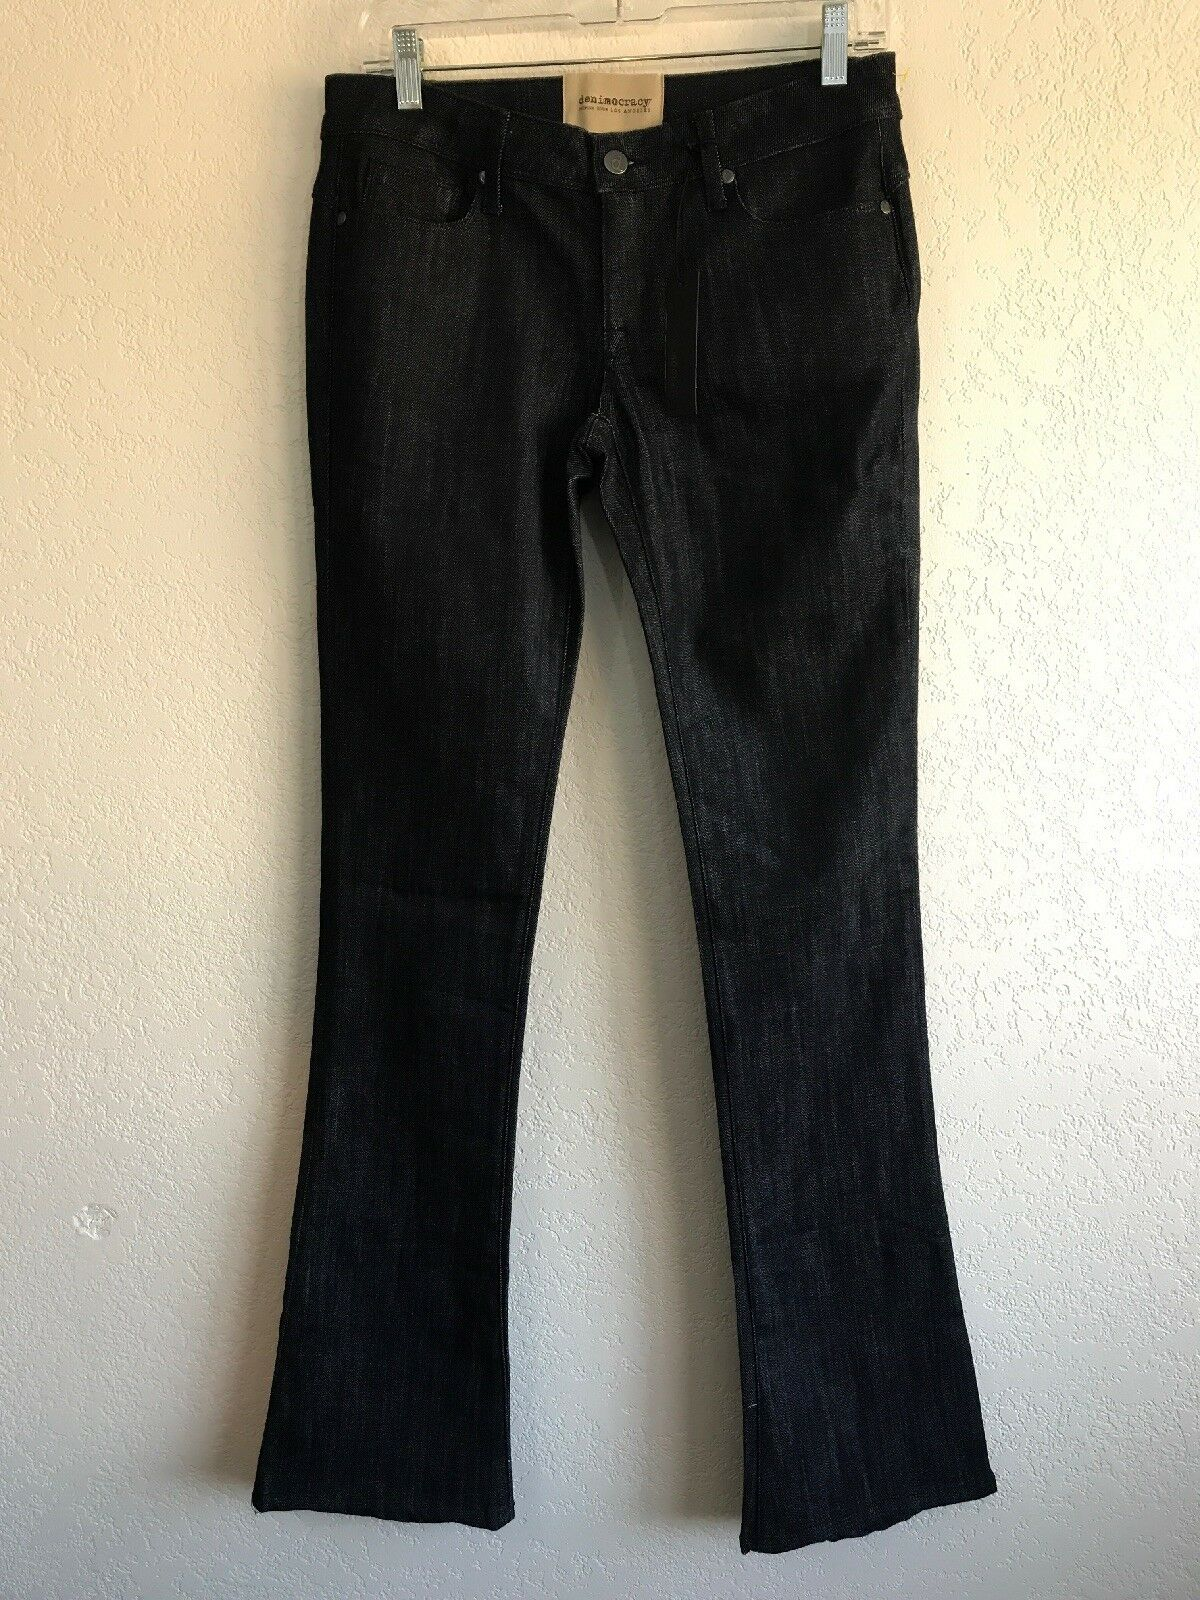 NWT NEW Denimocracy Womens Skinny Bootcut Julia Size 28